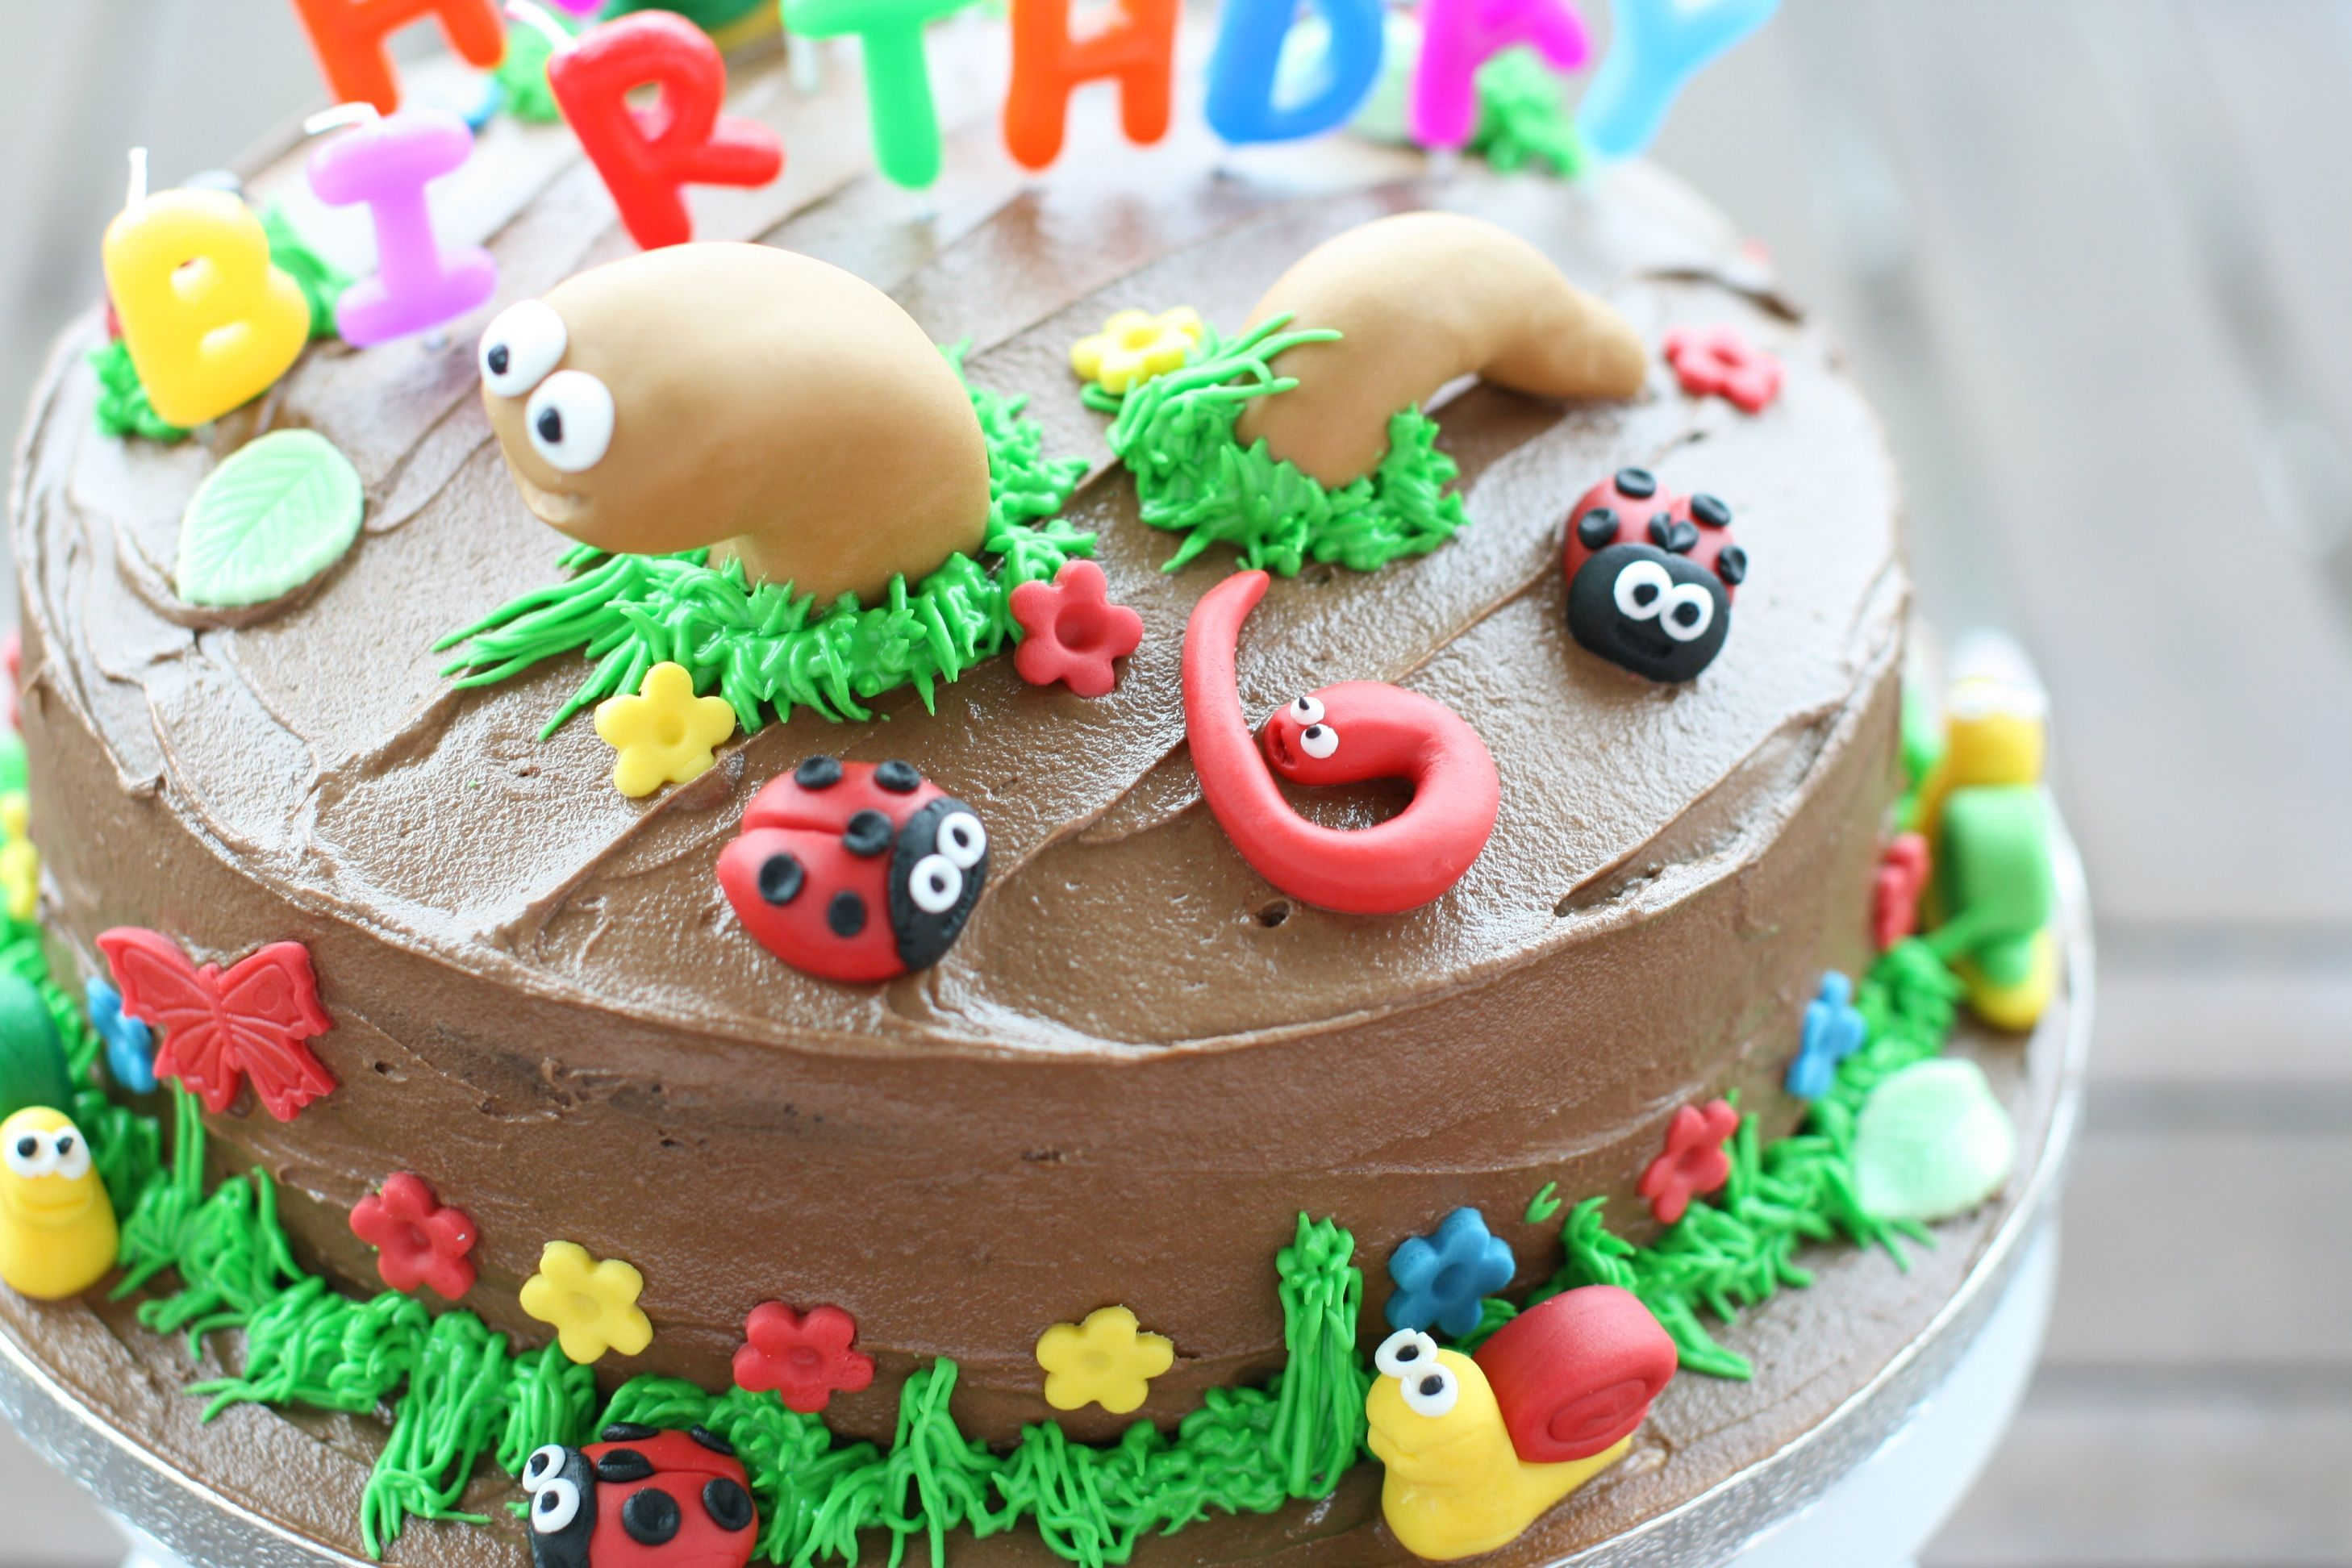 When my friend asked me to make a birthday cake for his six year old daughter I wasn't expecting the request to be for a cake covered in worms, snails and bugs. I made a chocolate cake and chocolate butter icing to make it look all muddy and then covered the cake in fondant snails …